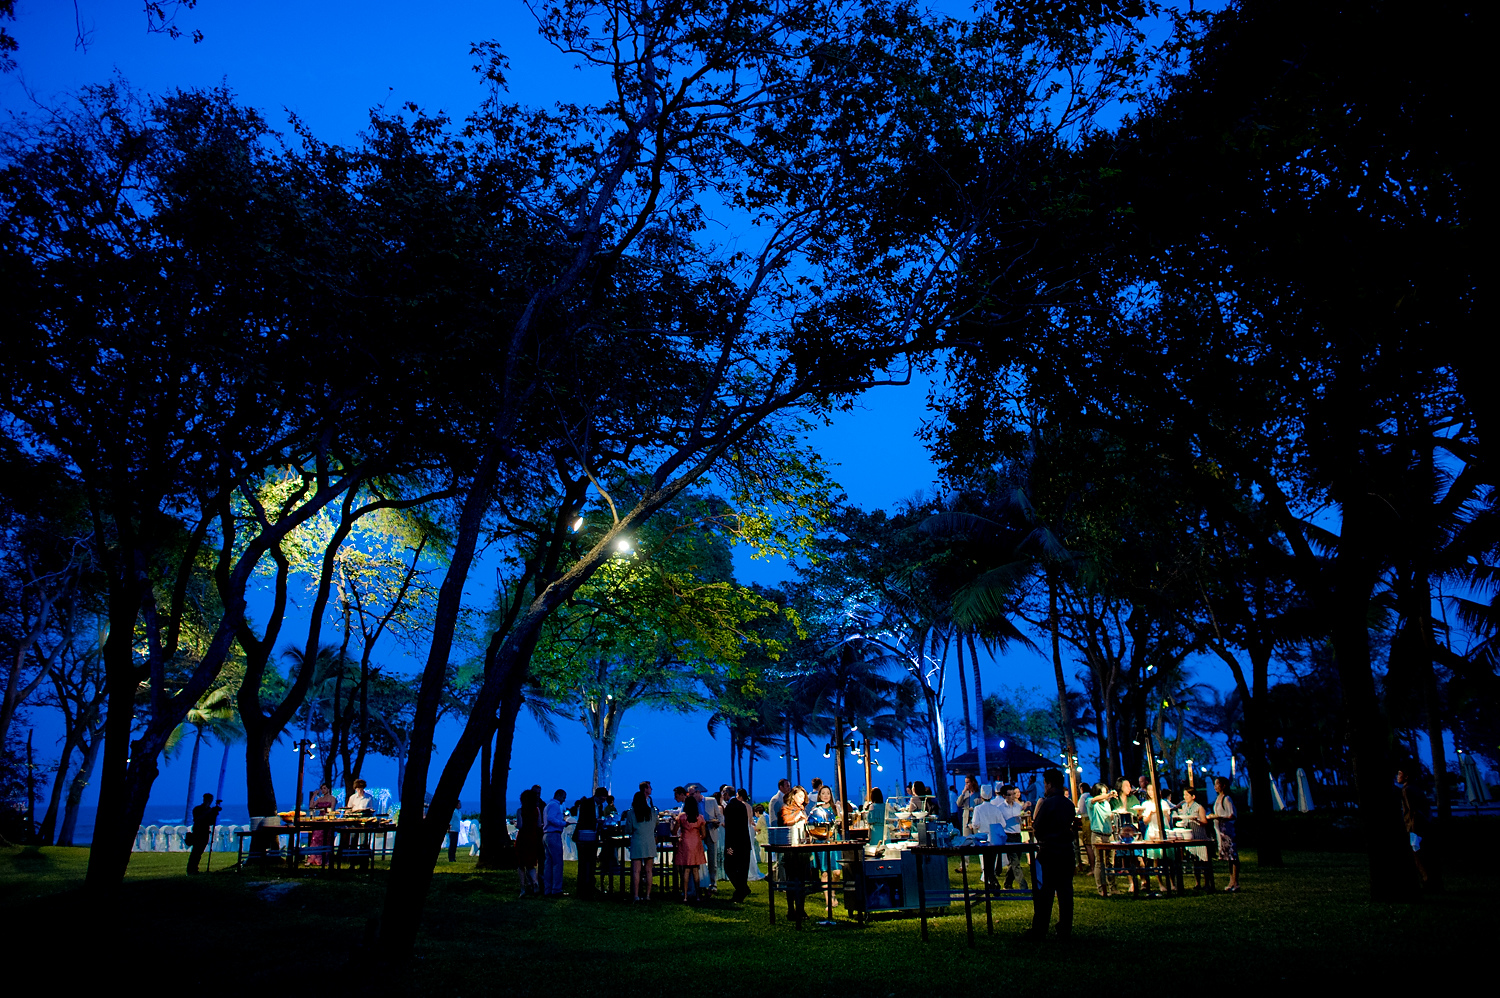 Hua Hin, Thailand - Destination wedding at Hyatt Regency Hua Hin in Thailand.